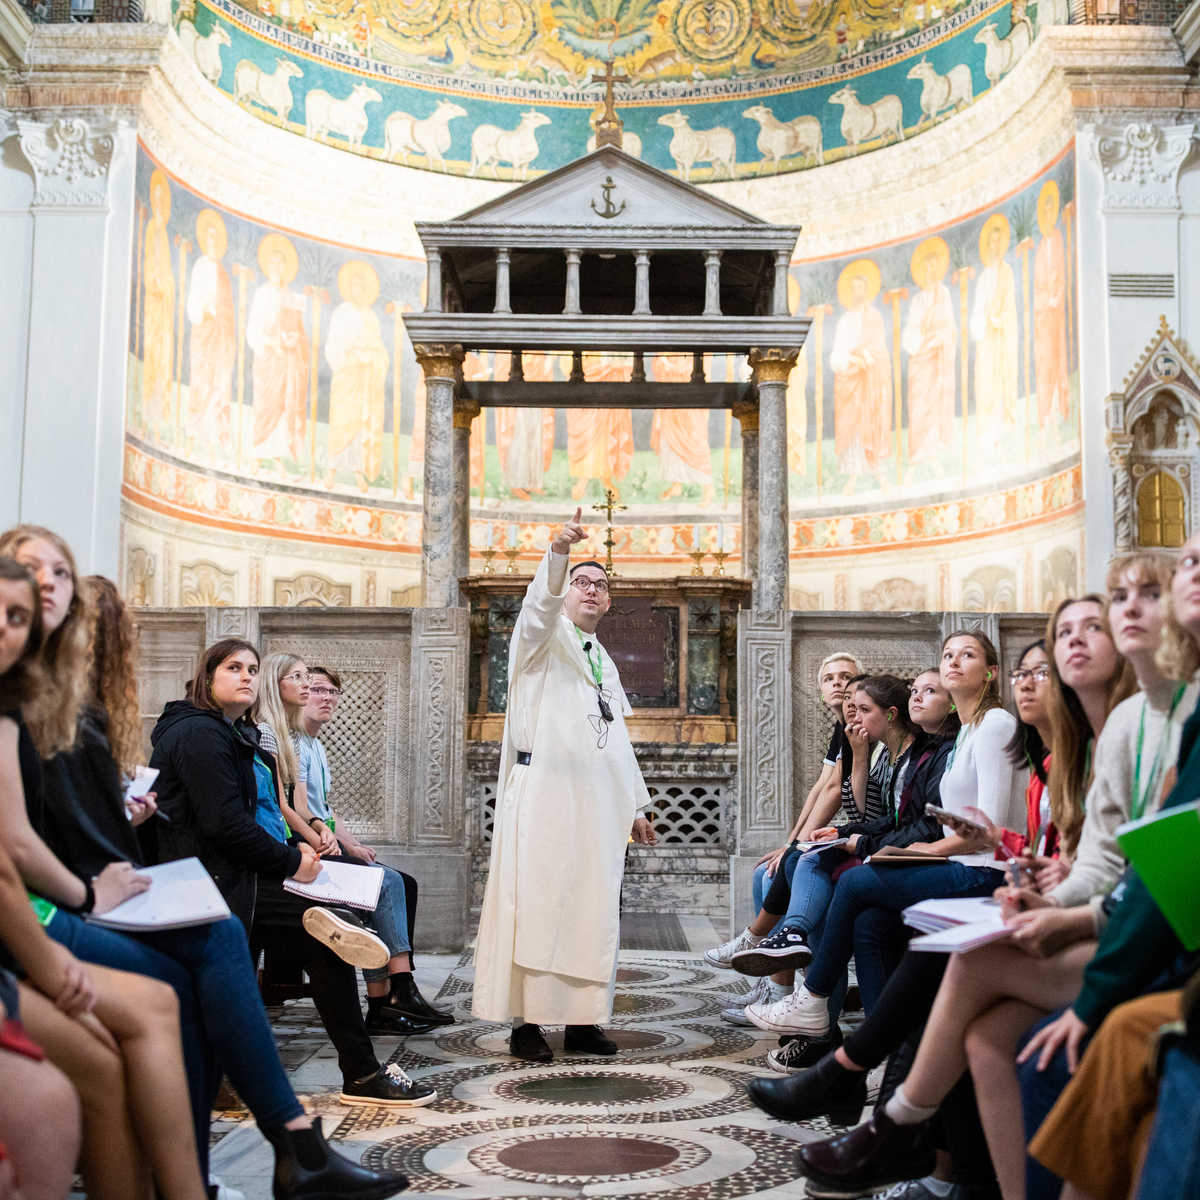 A speaker points to a piece of artwork as students listen intently in a basilica in Rome, Italy.